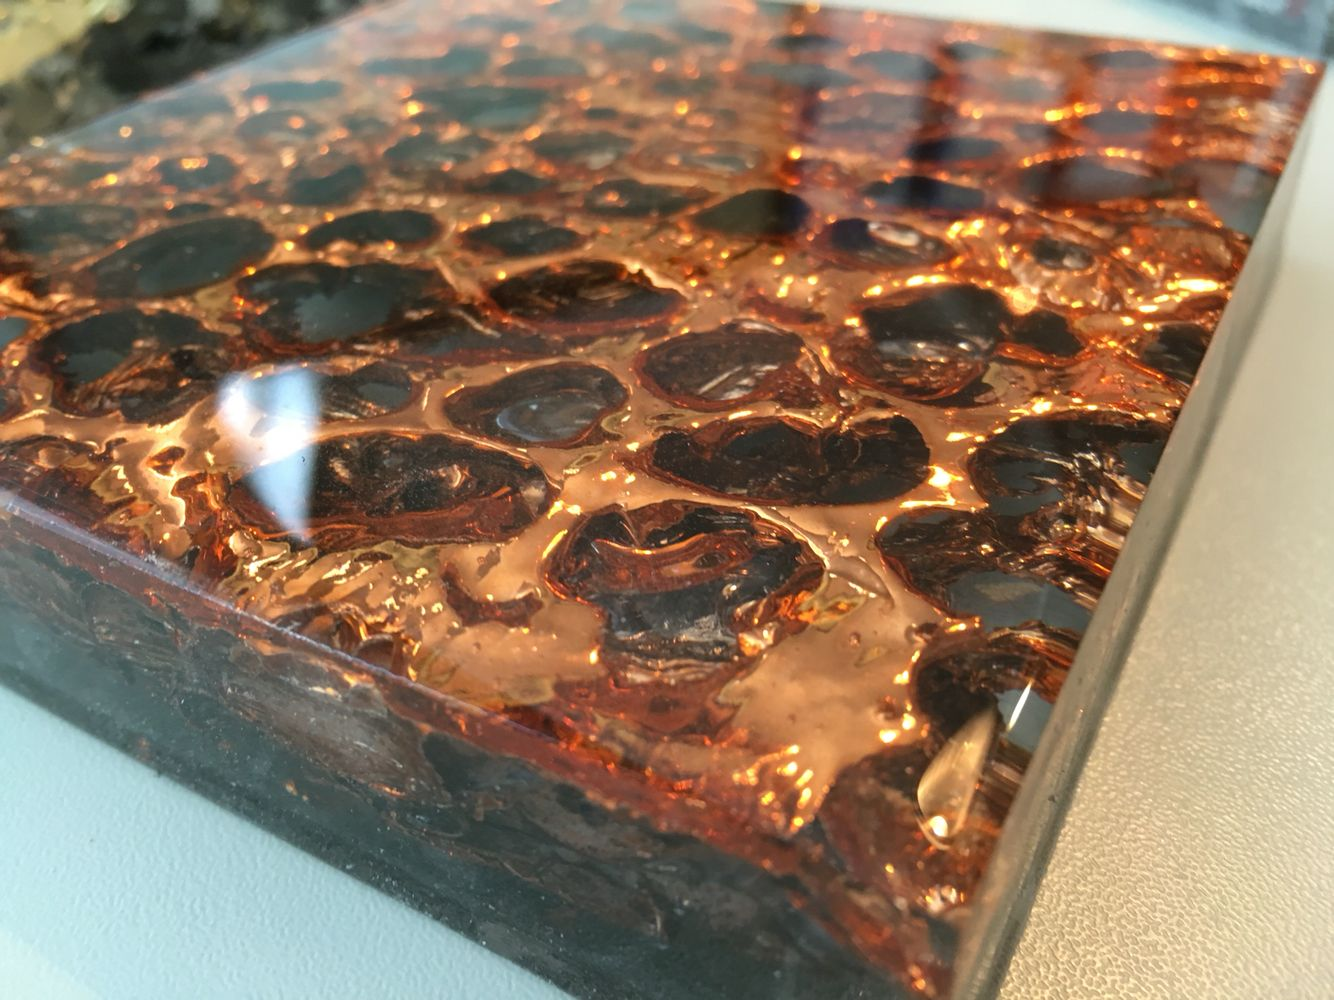 Alusion Chromed Copper And Moulded All Over With Epoxy